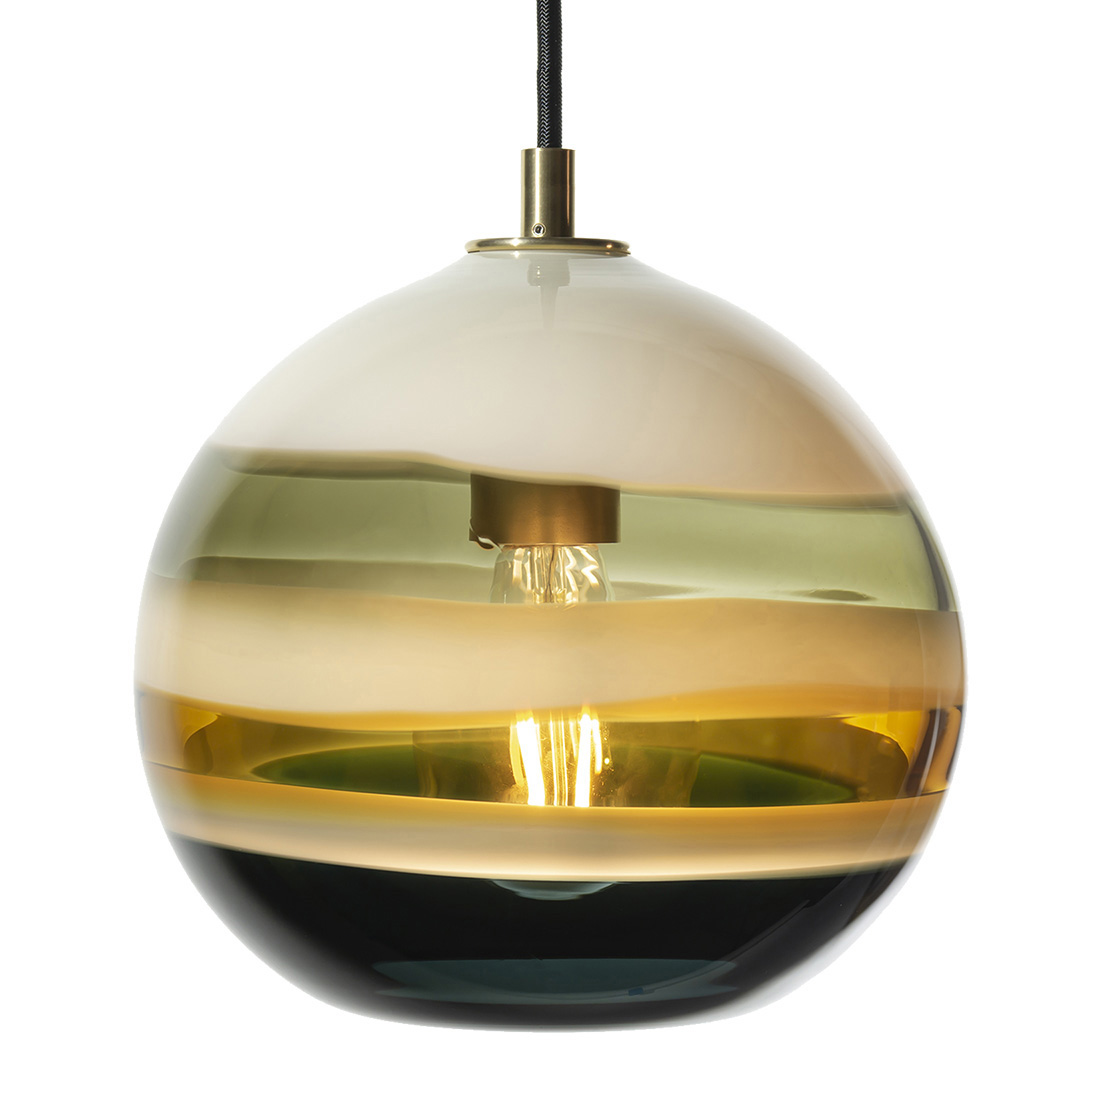 Hand Blown Glass Lighting. borrego banded orb pendant by siemon and salazar